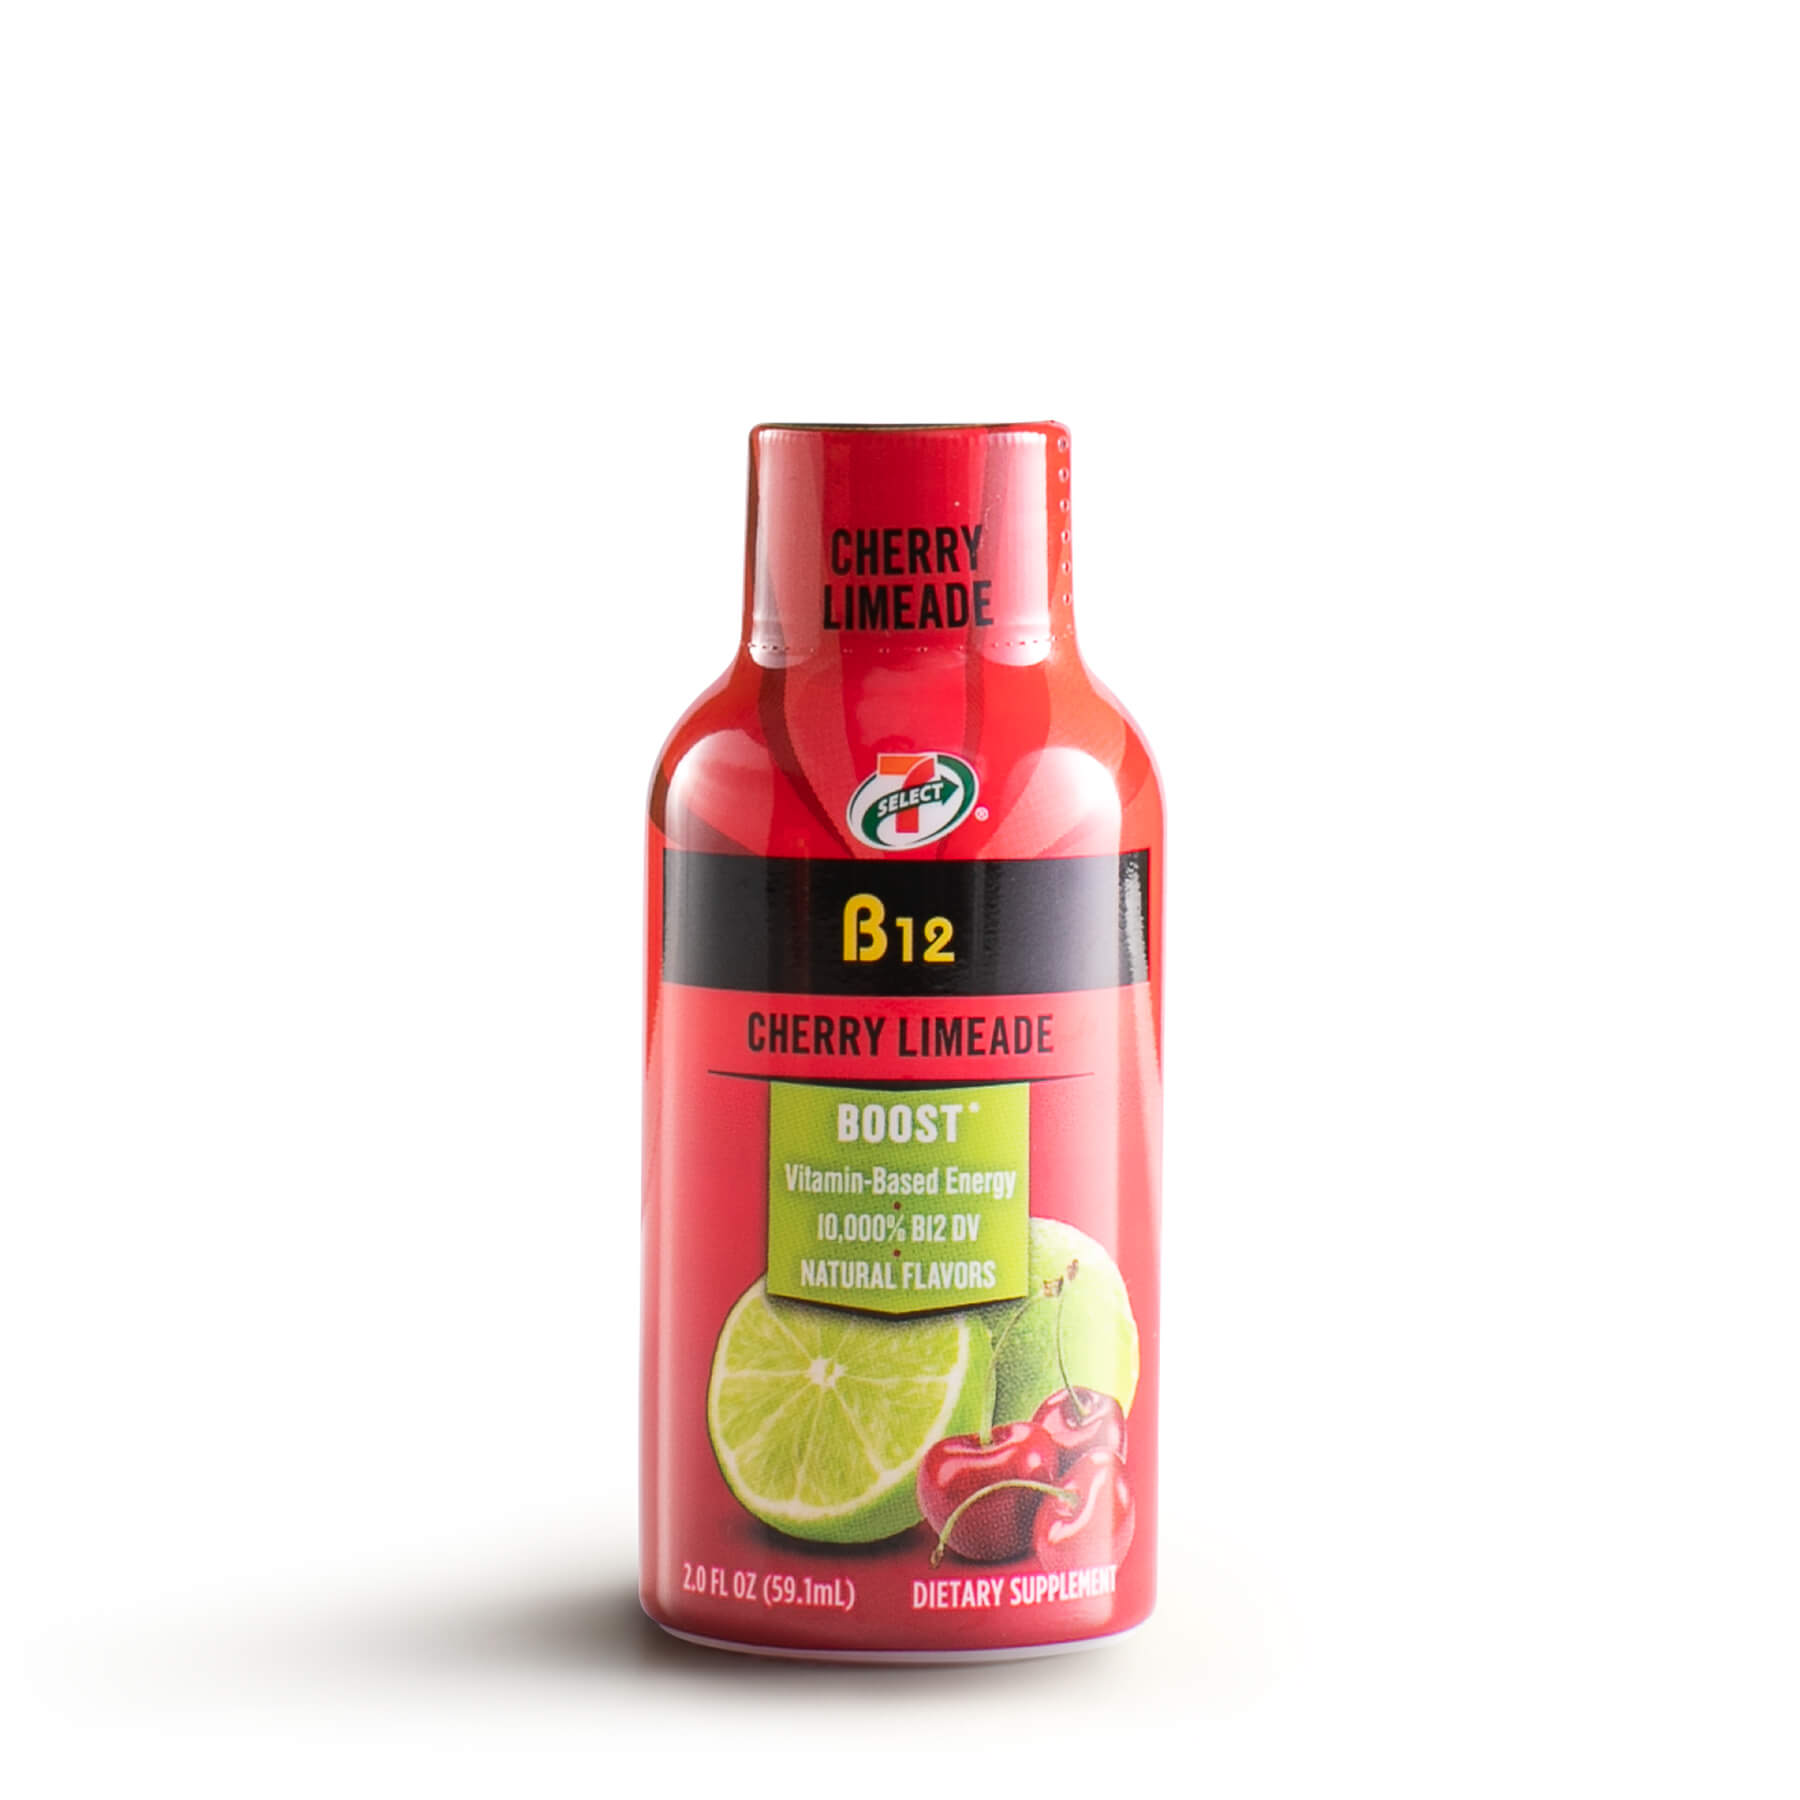 A single 7-Select B12 energy shot in cherry limeade flavor.